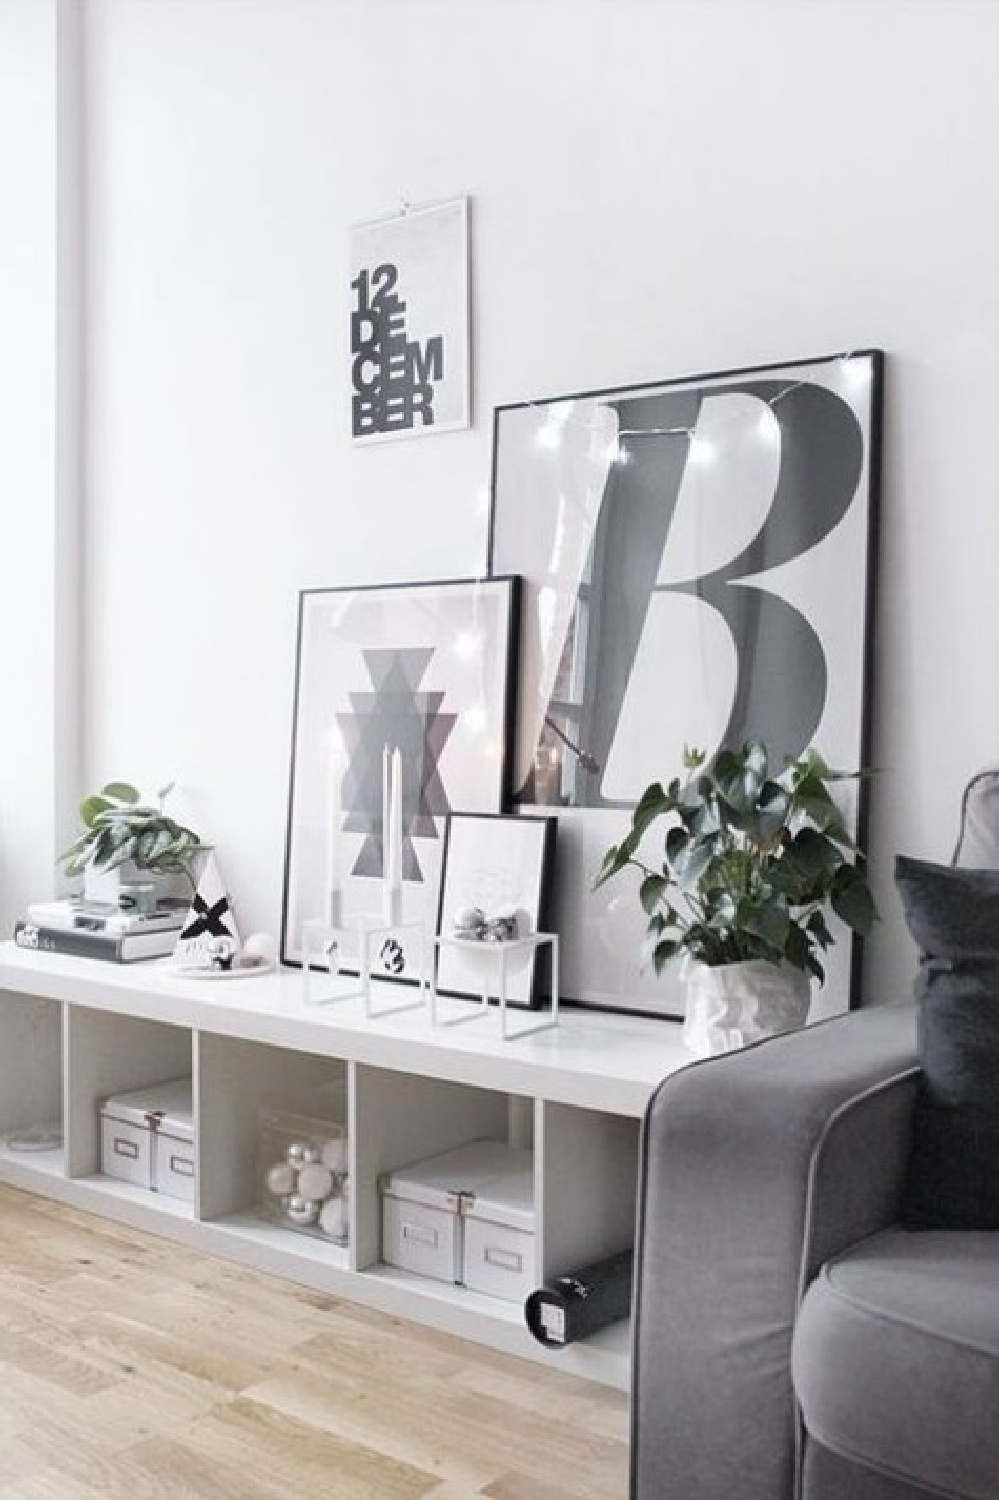 Kallax used as a low chic console with black and white Scandi vibe in a modern space. #kallax #ikeahacks